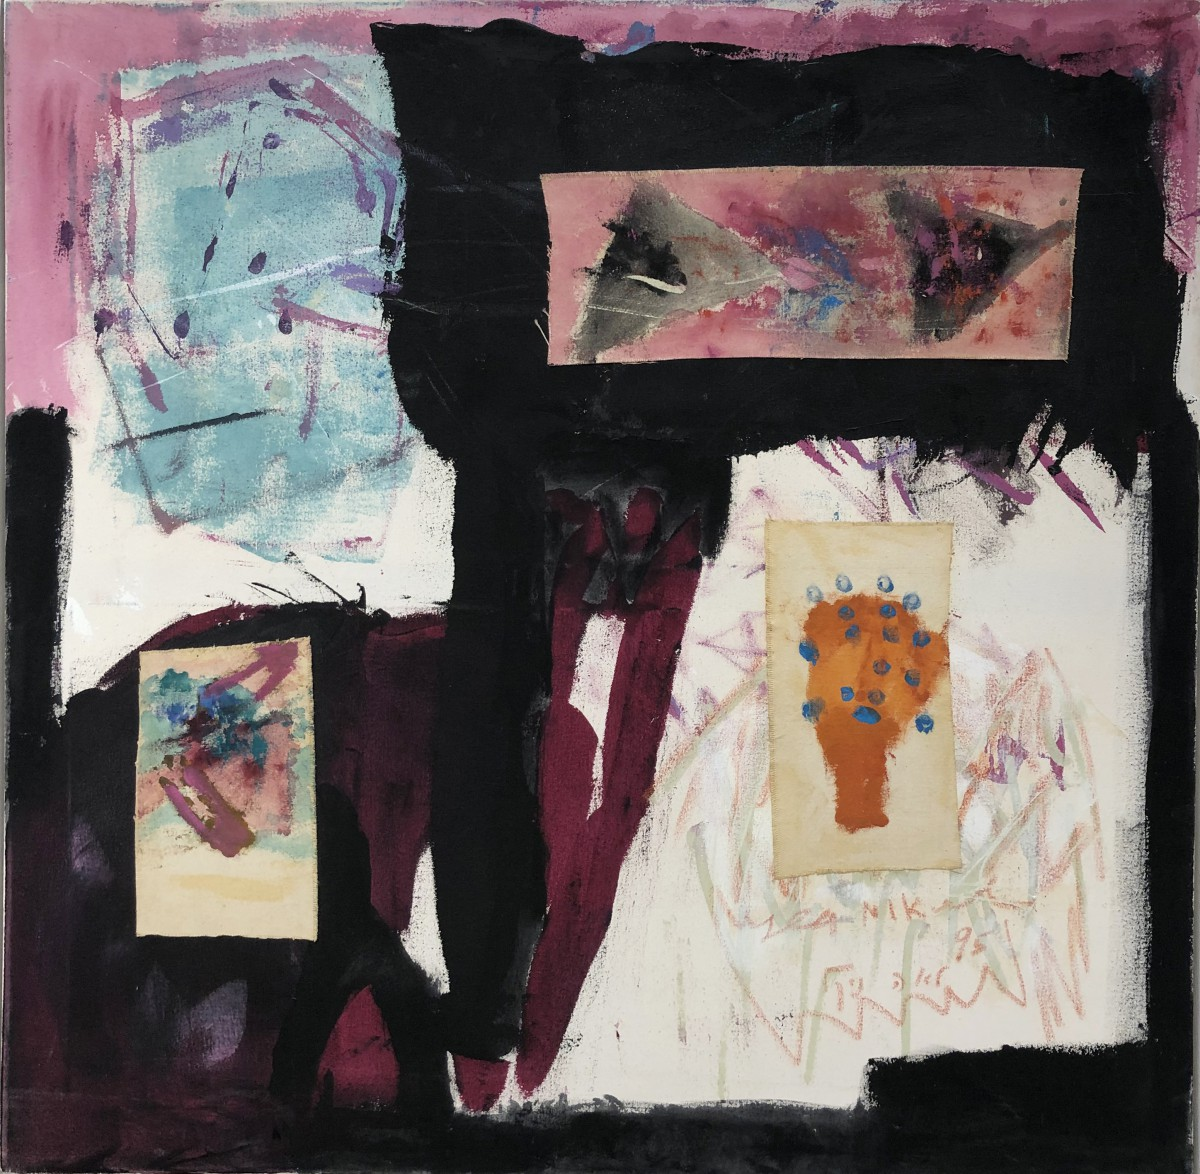 Lea Nikel, Untitled Acrylic and collage on canvas,1995,100x100 cm,